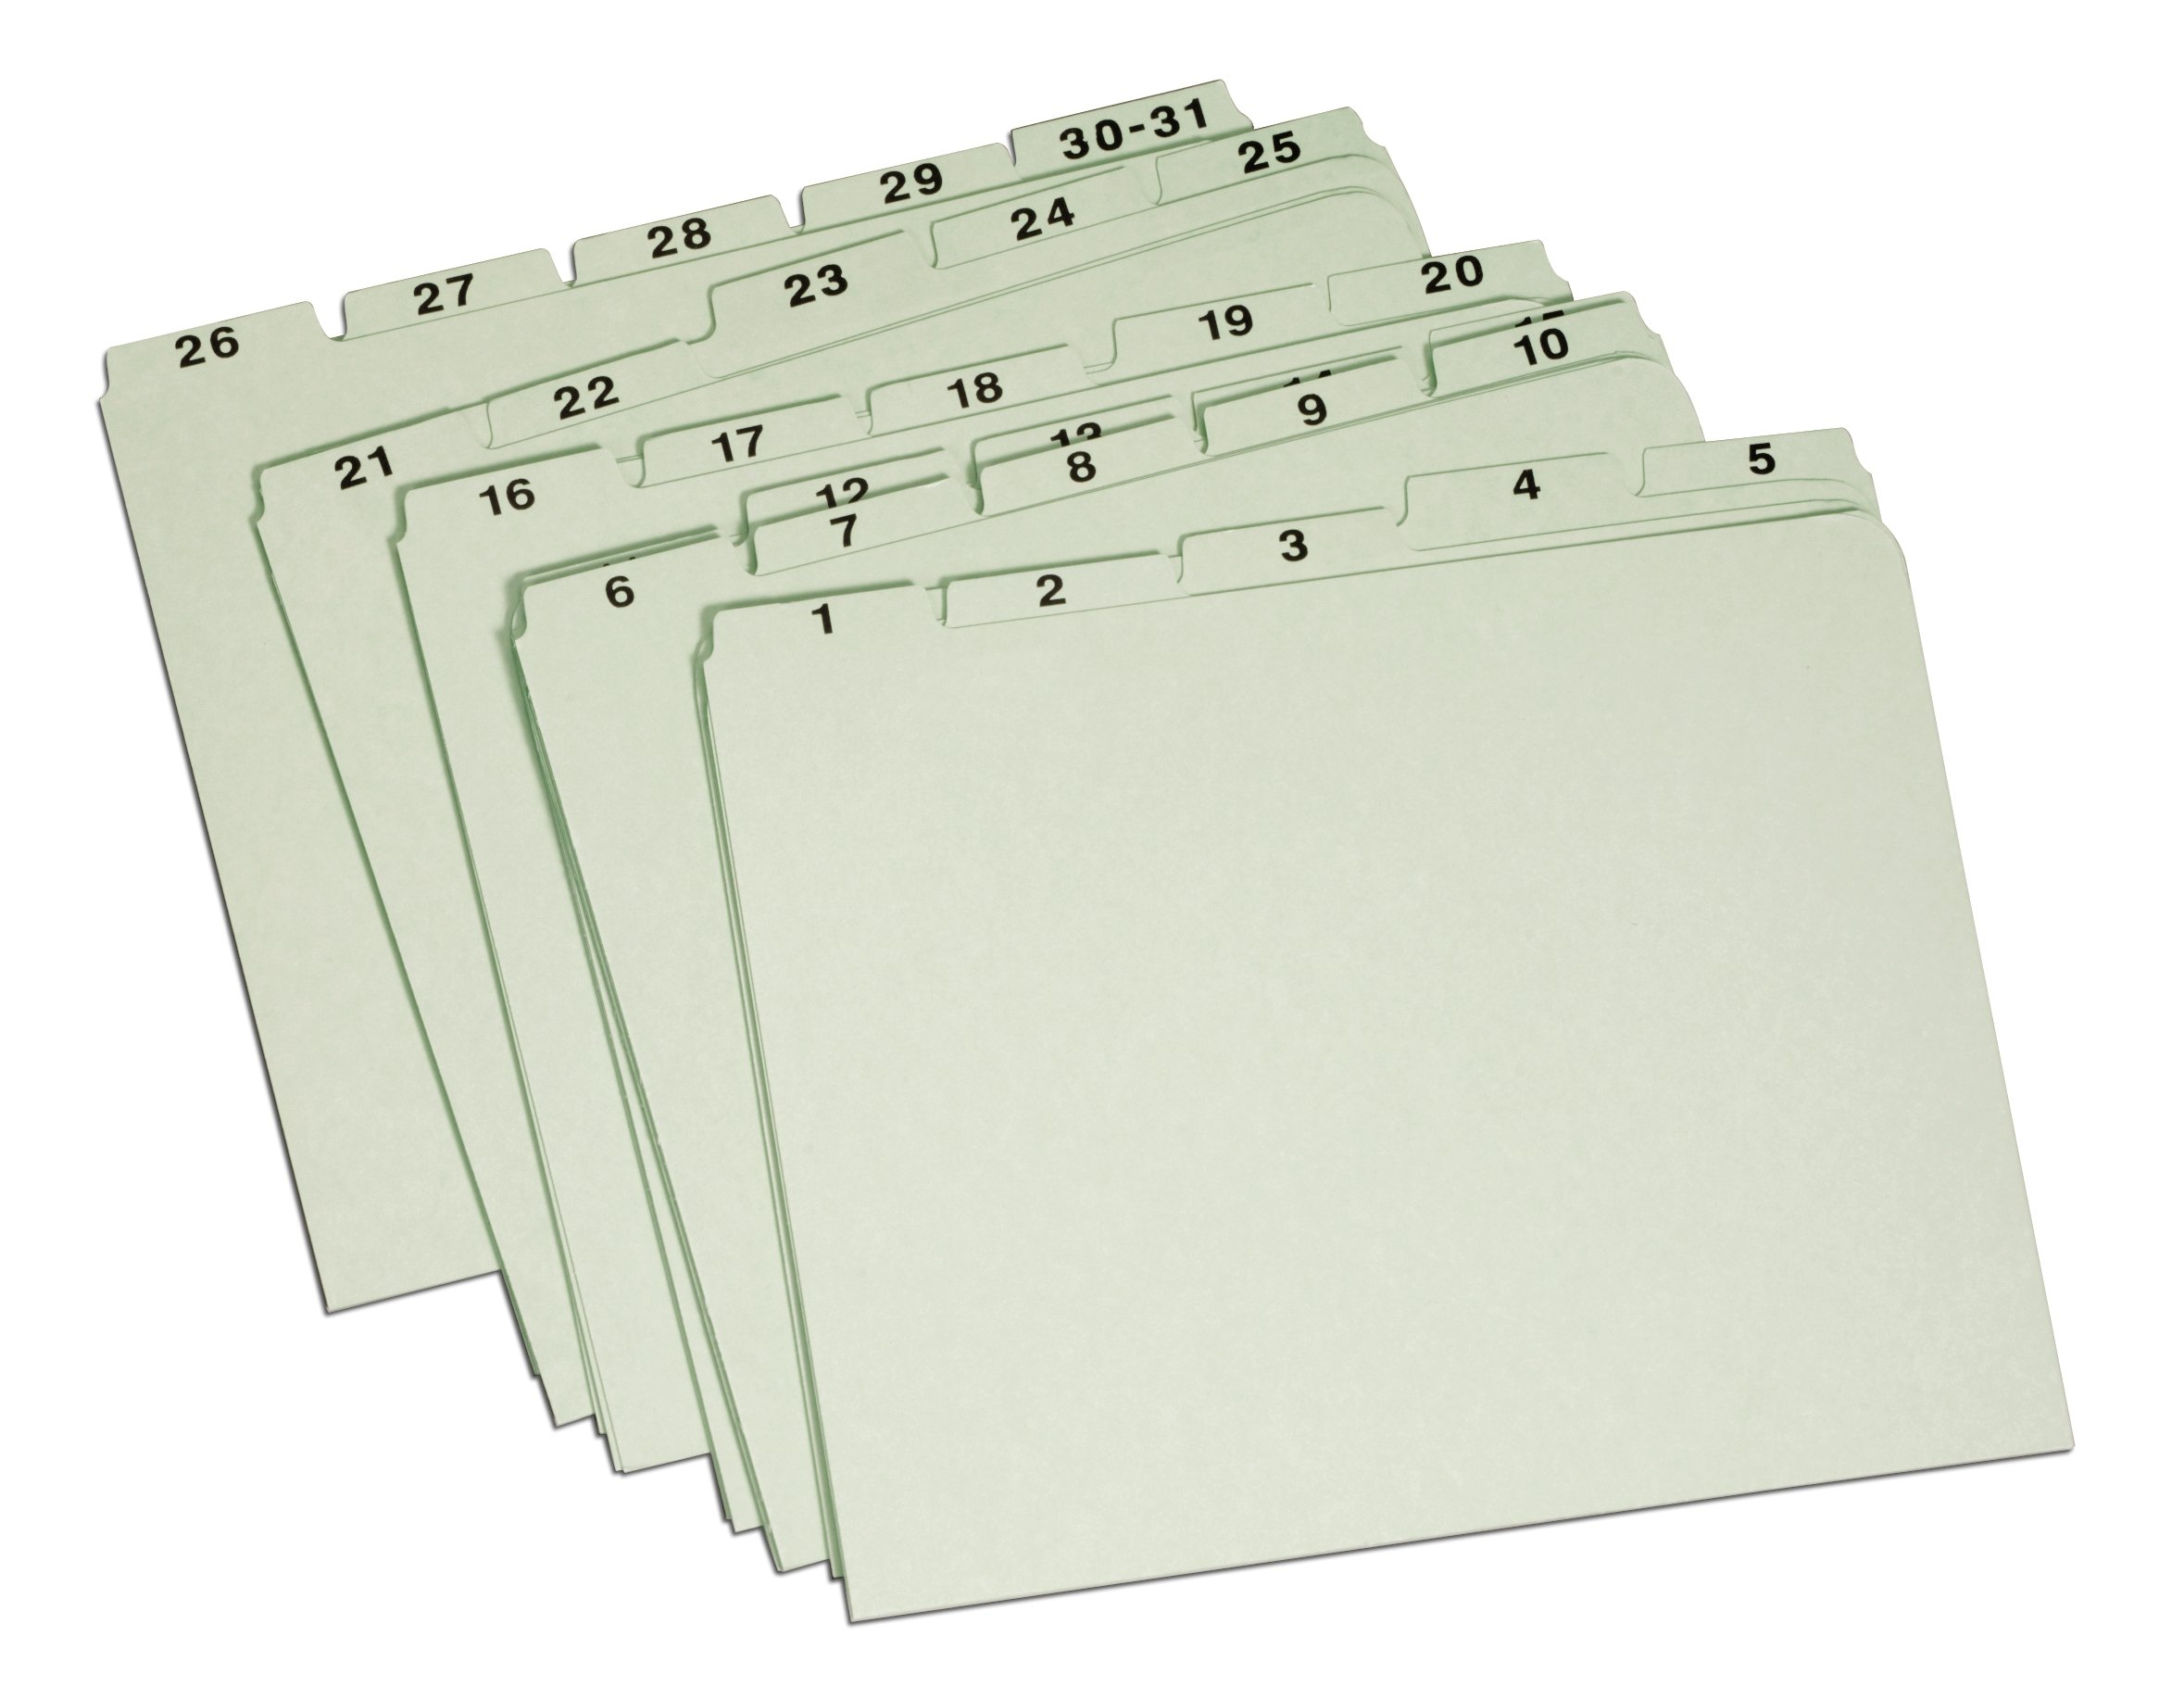 Globe-Weis/Pendaflex Pressboard File Guides, Vertical, Letter Size, 1-31 Index, Light Green, (31PX91)